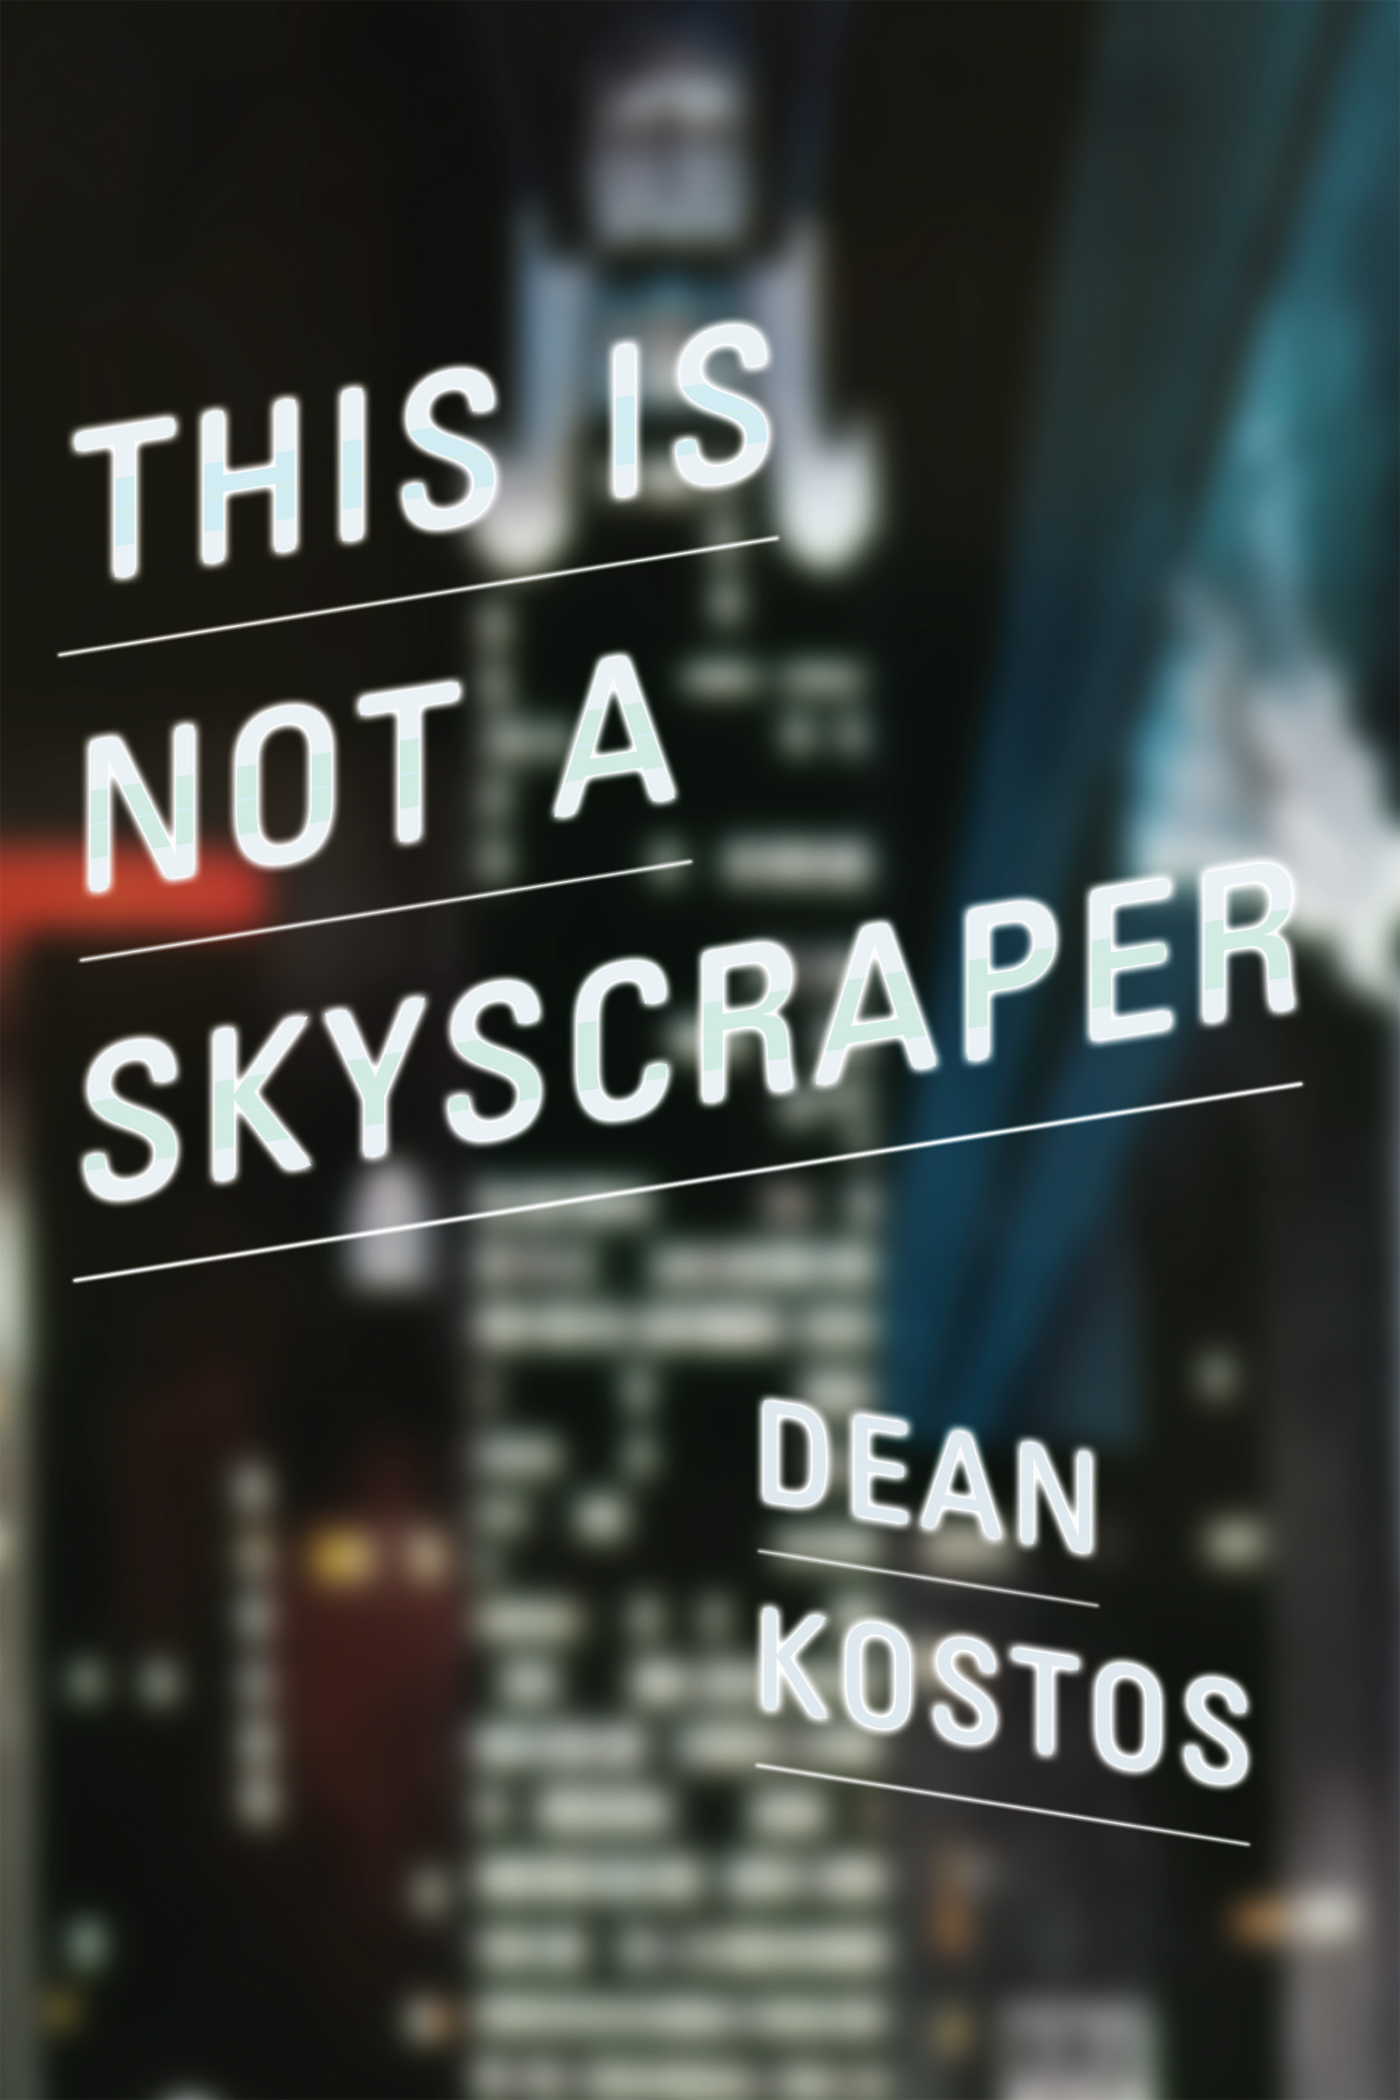 """An image of a skyscraper at night, white text reads """"This is not a Skyscraper"""" and """"Dean Kostos"""""""